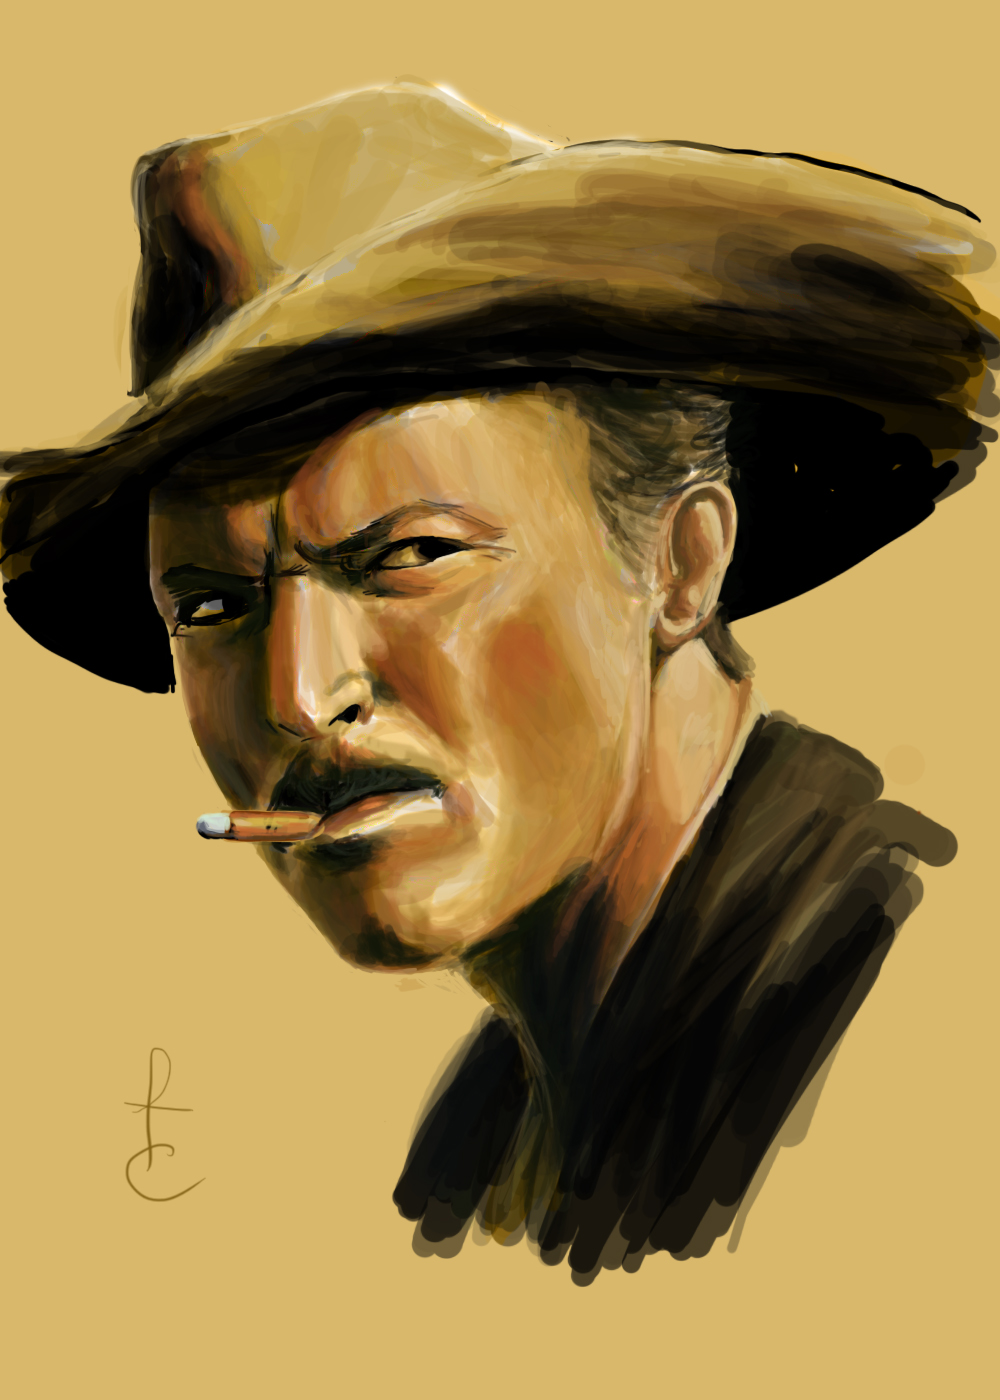 Lee Van Cleef by khakue on DeviantArt